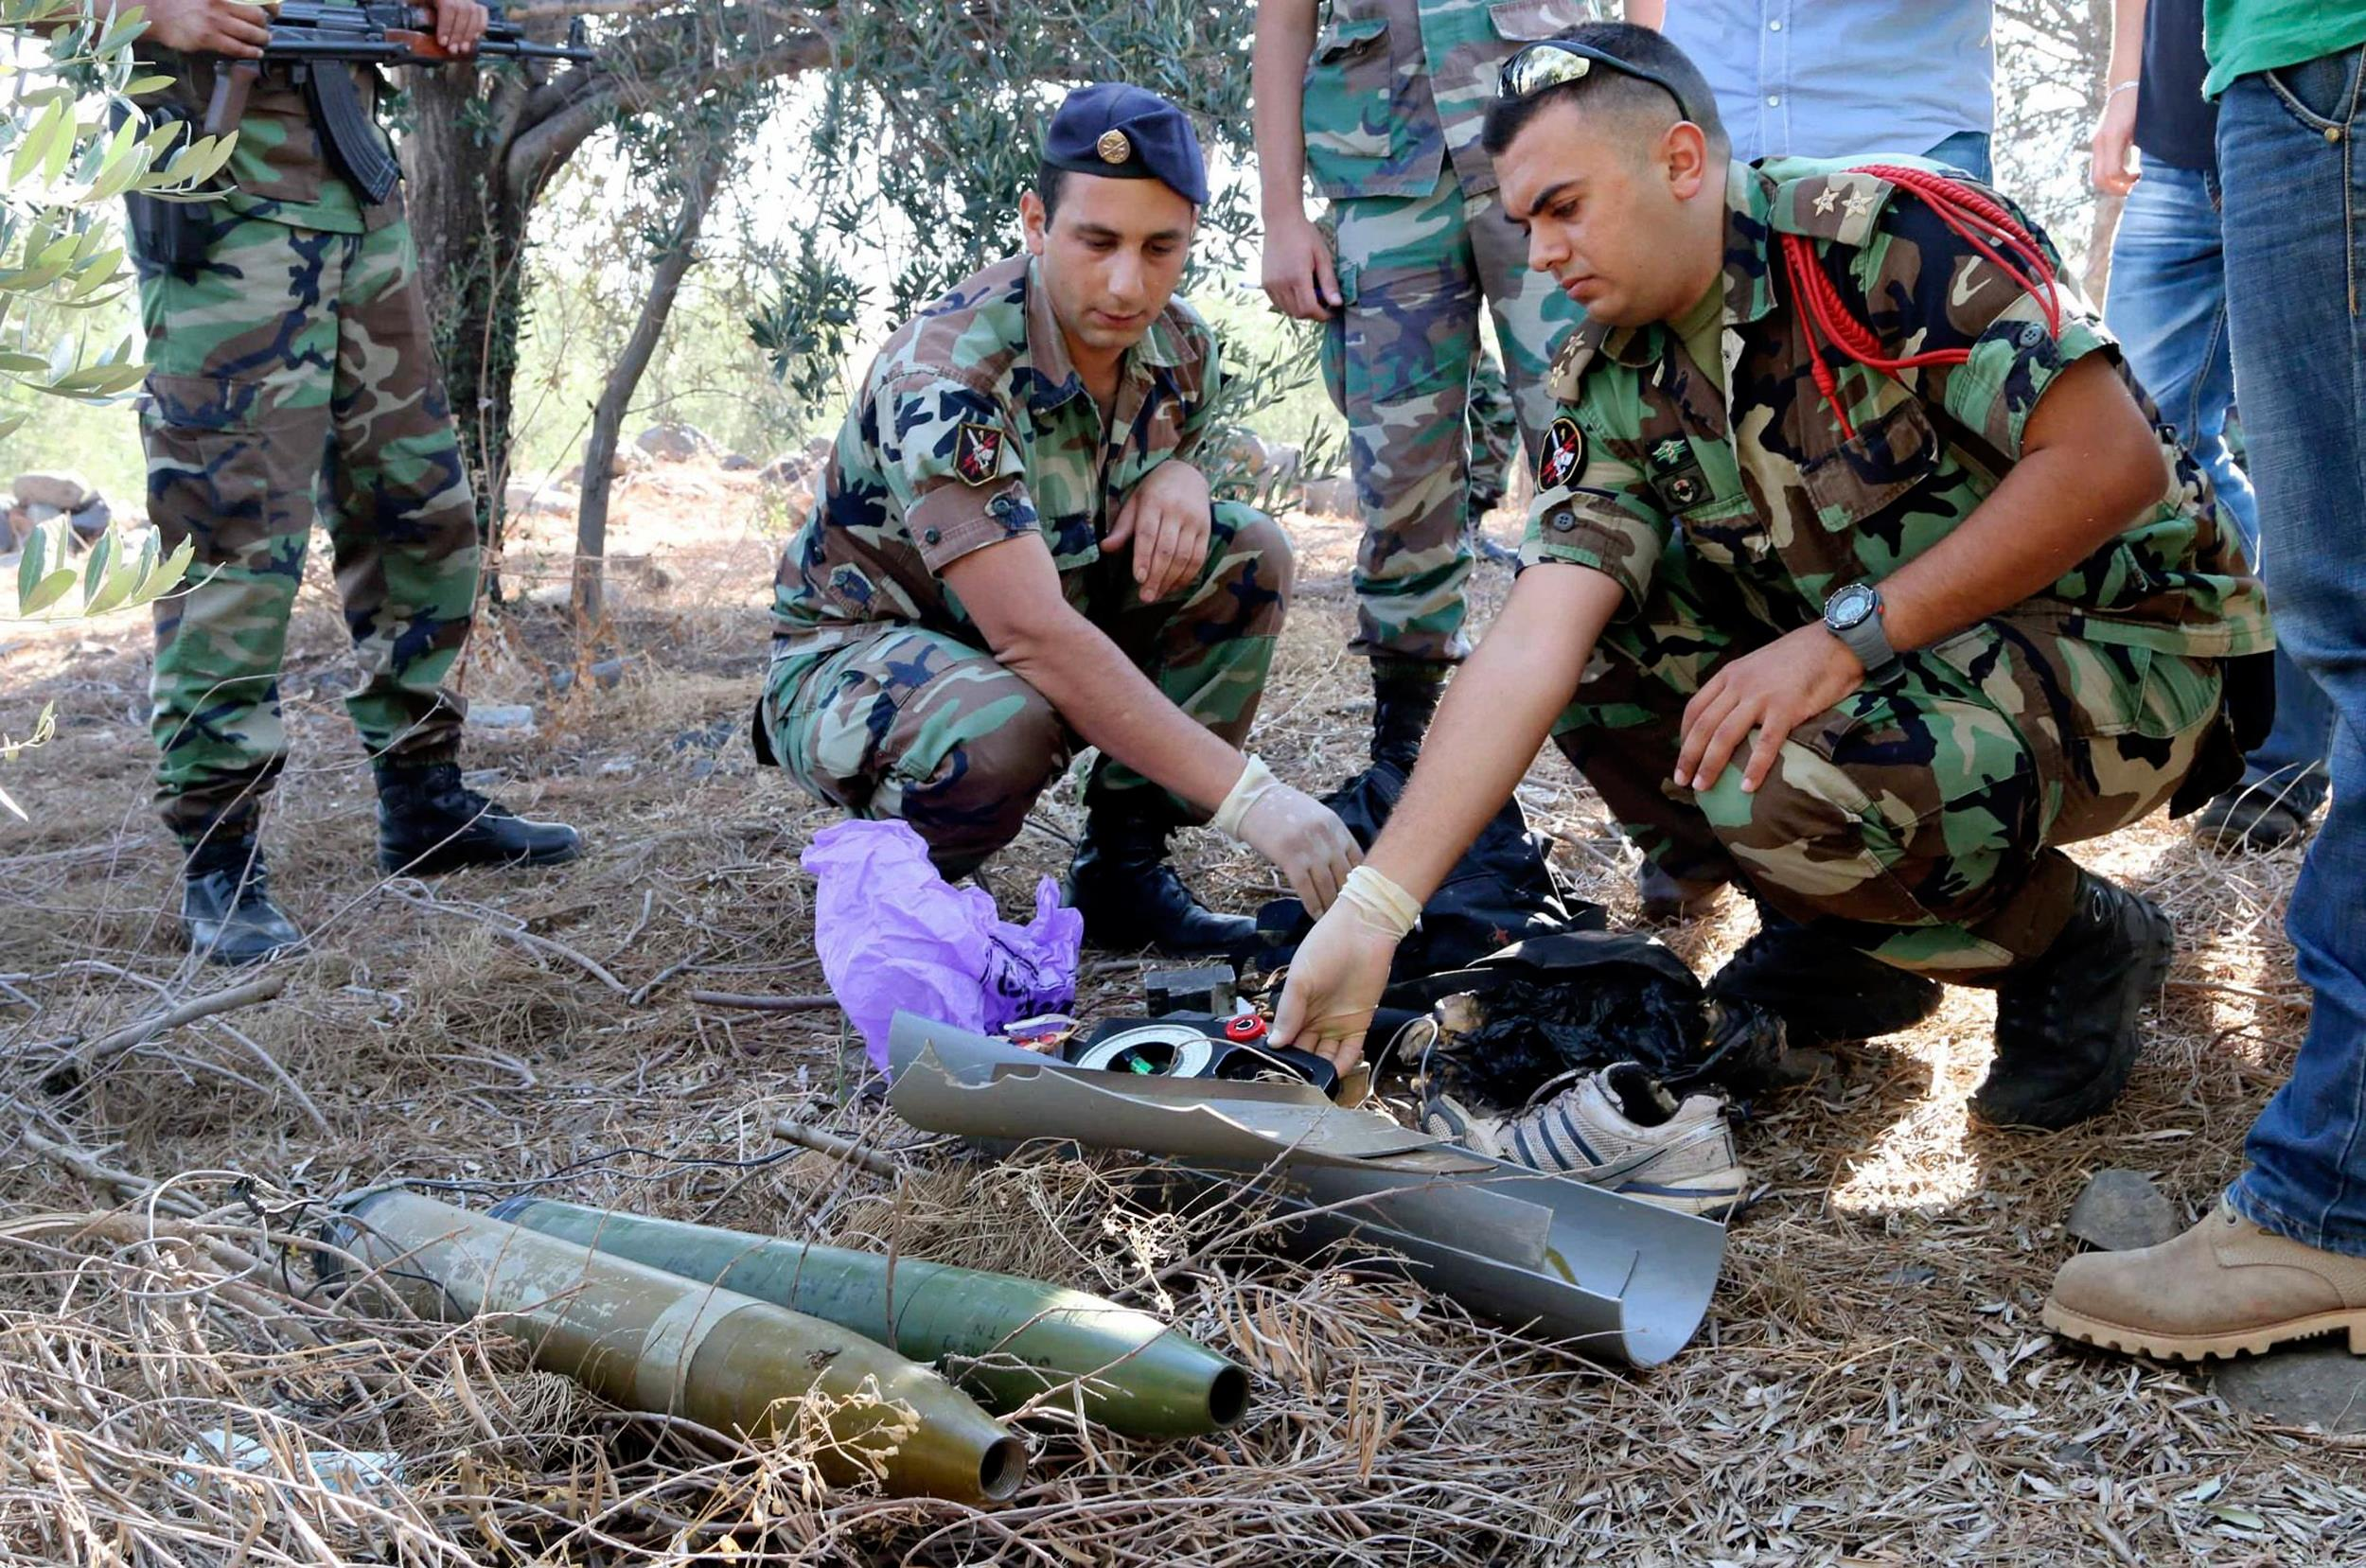 Image: Lebanese army personnel inspect the remains of a shell that was suspected of having been launched from Lebanon to Israel, near the village of El Mari in Southern Lebanon